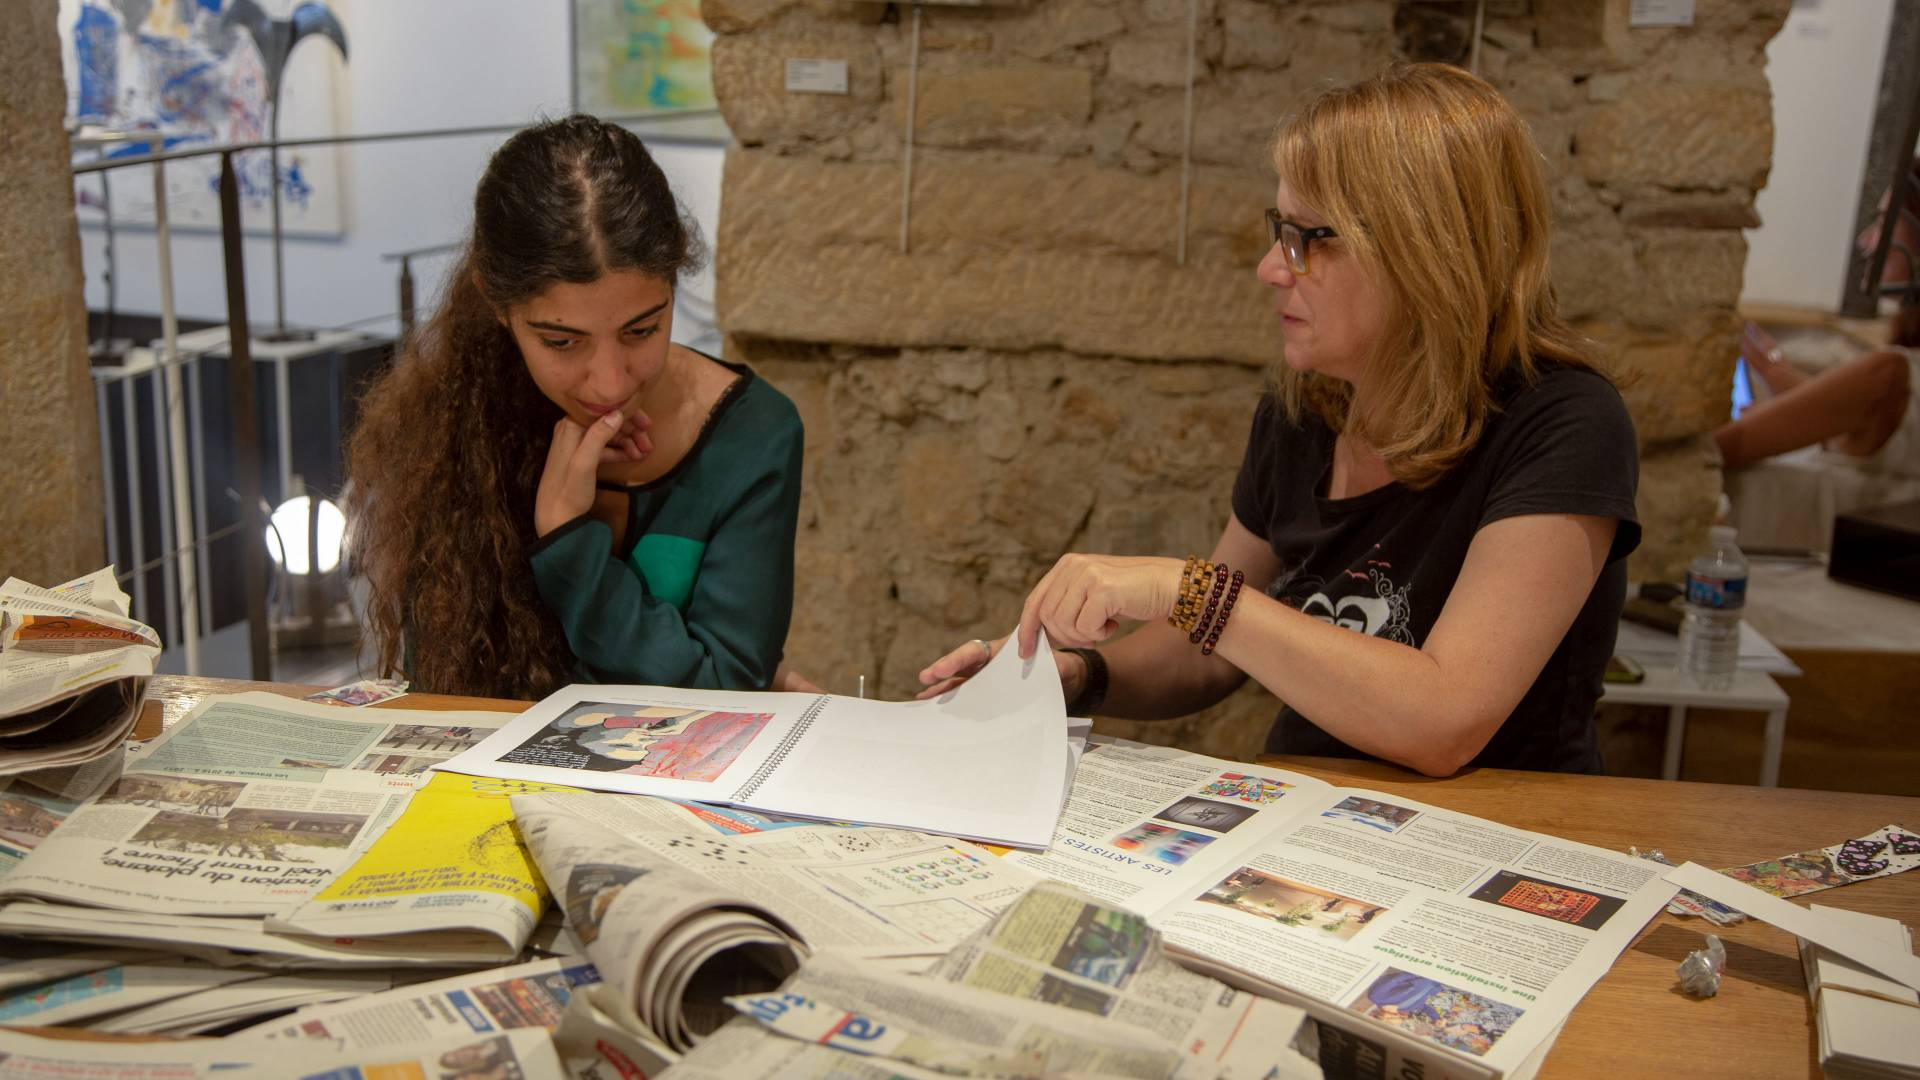 Instructor and student looking at newspapers in France